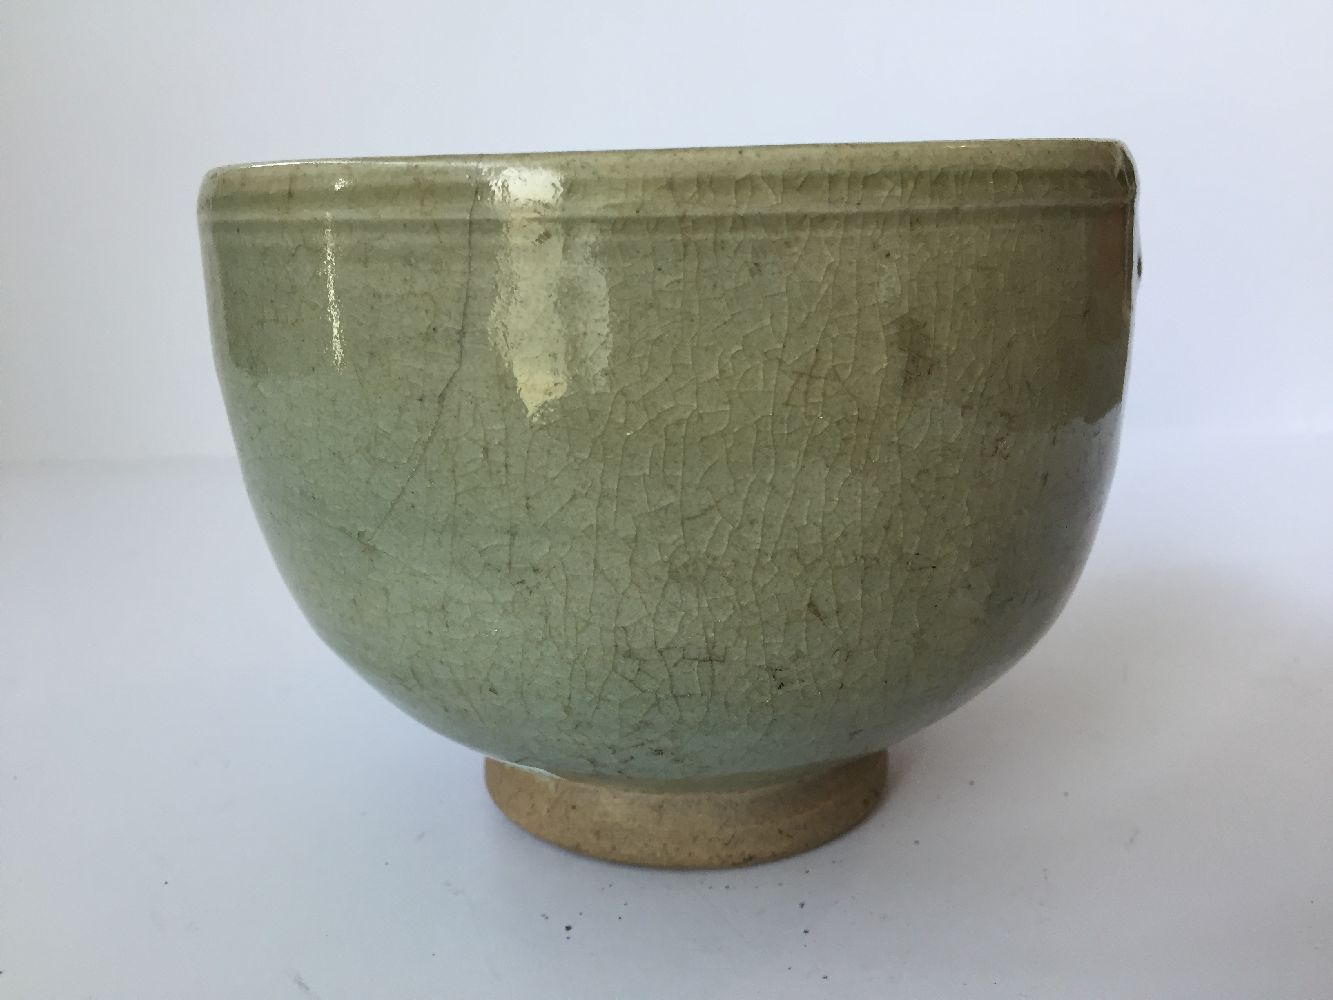 Three Thai Sawankhalok bowls, 15th-16th century, each covered in a celadon glaze, two with fluted - Image 21 of 27